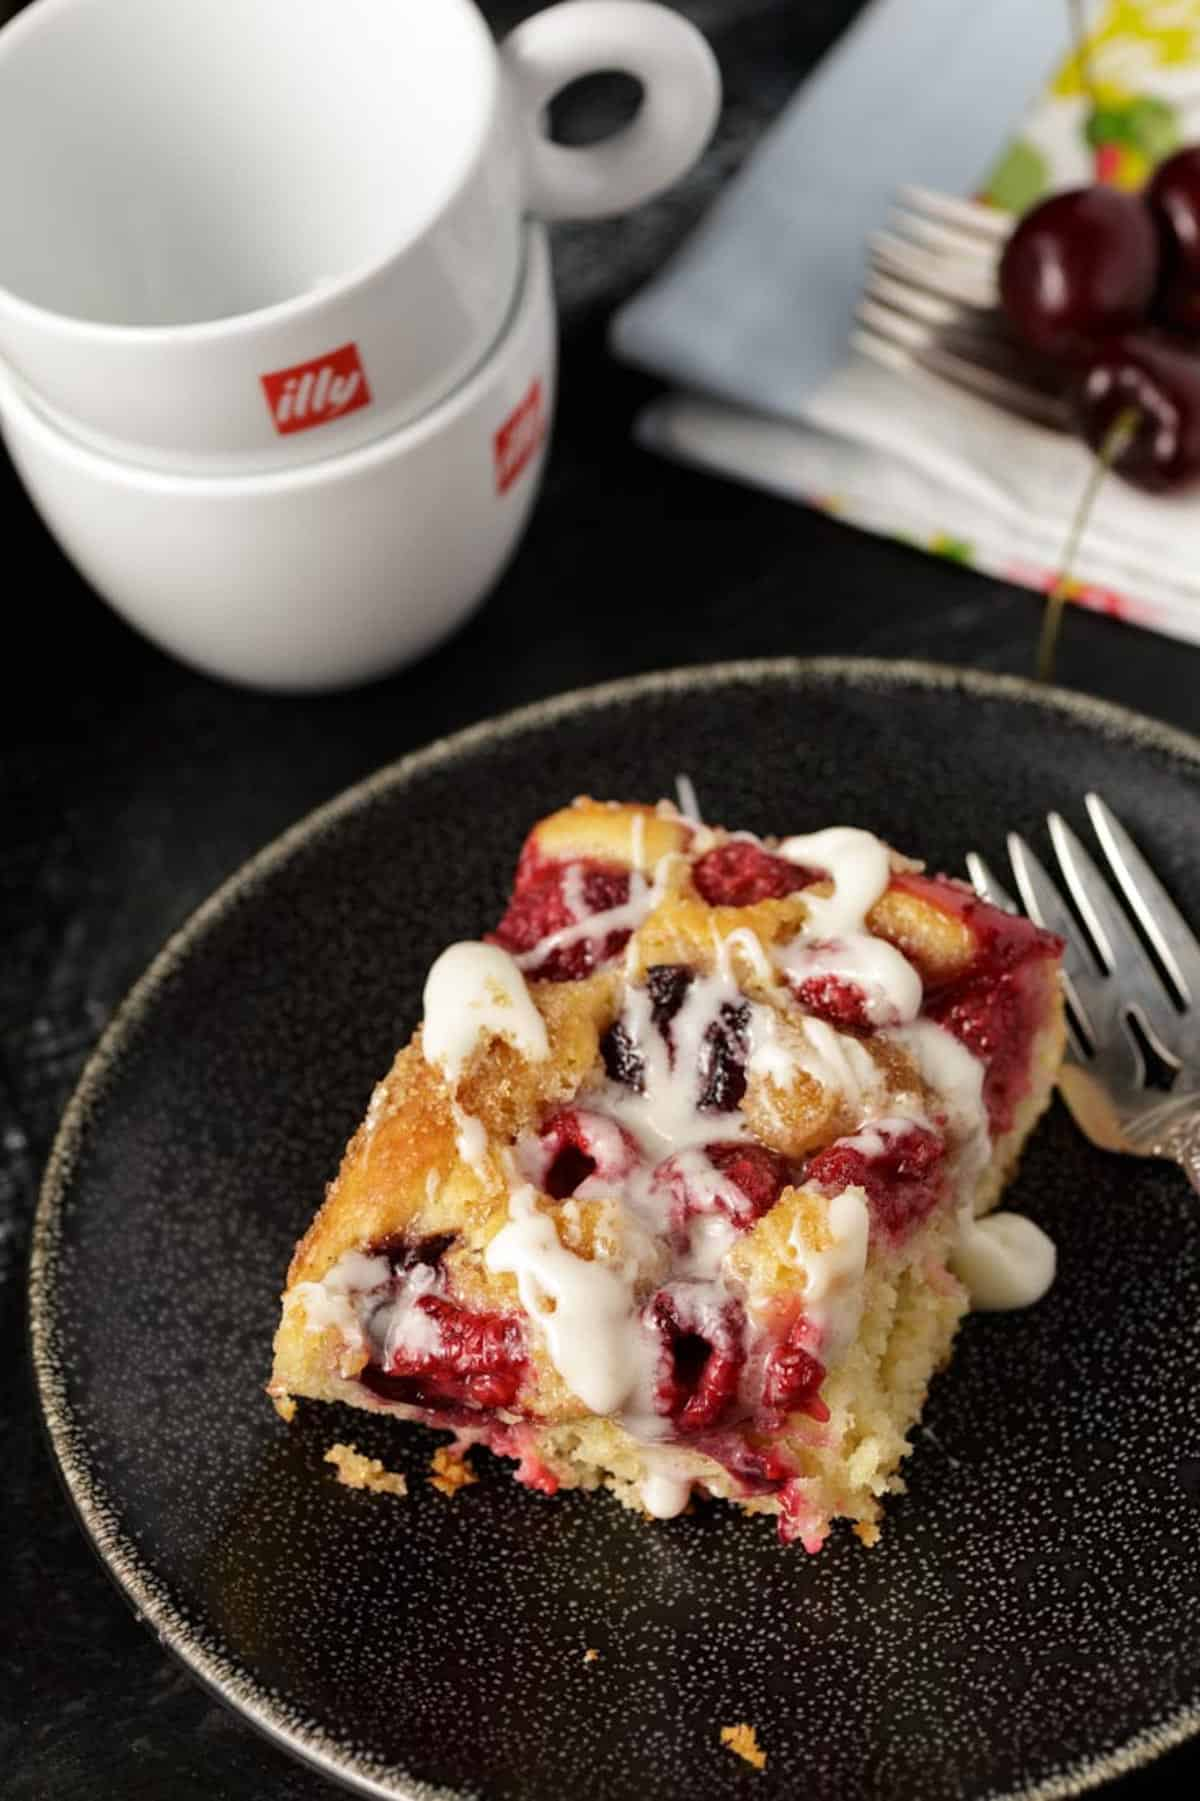 A serving of cherry coffee cake with cups for coffee to the side.